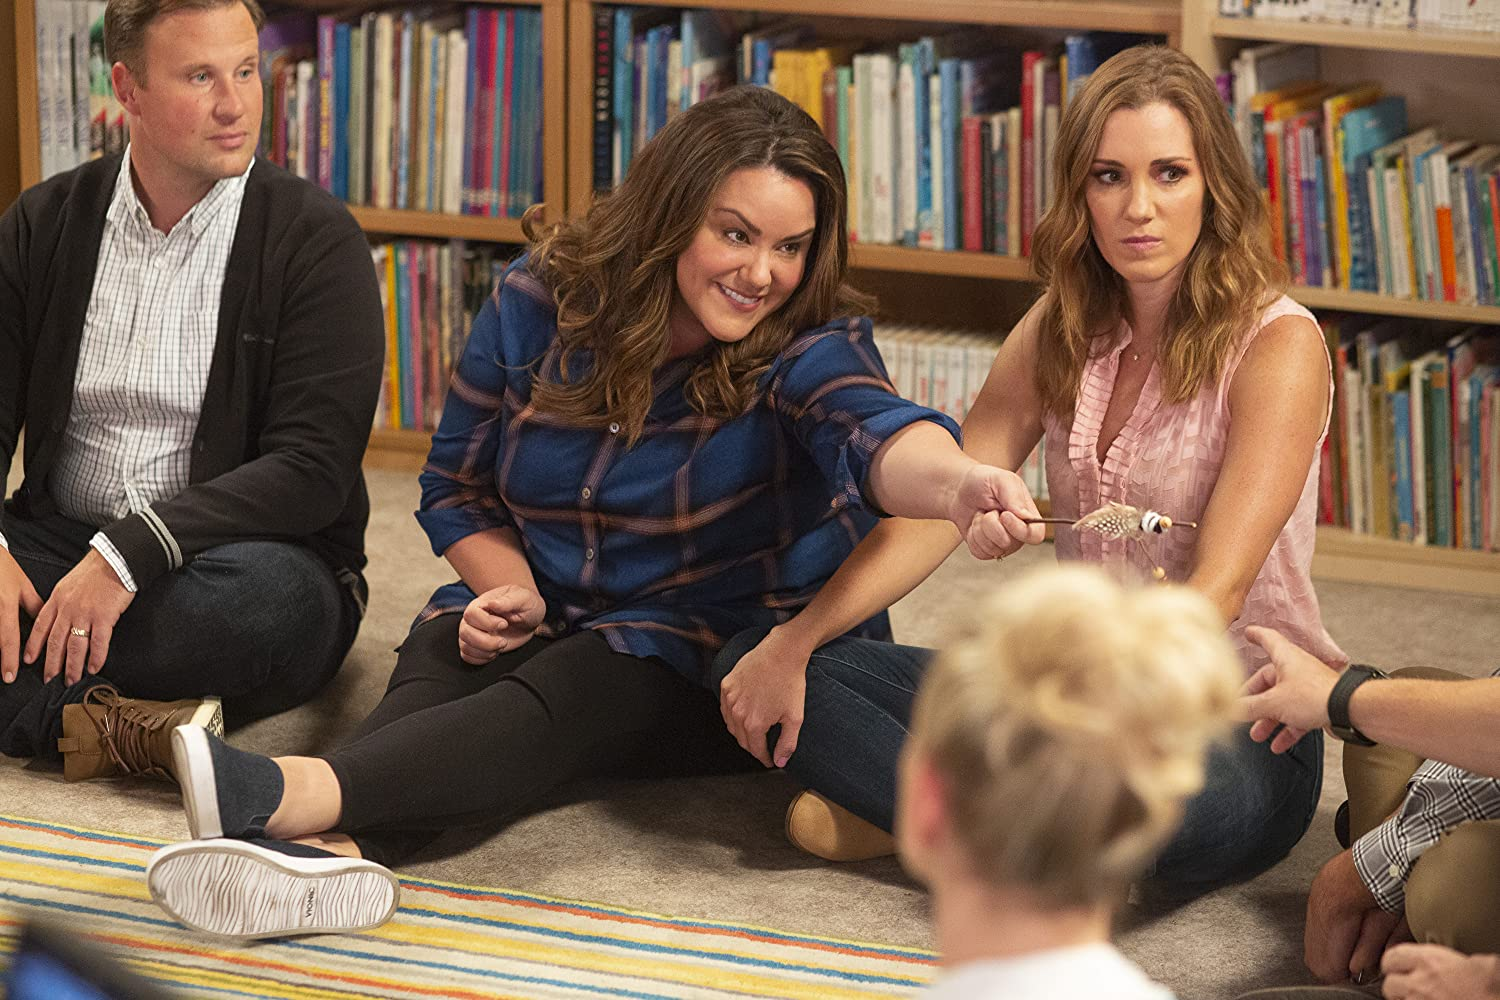 Katy Mixon and Carly Craig in American Housewife (2016)